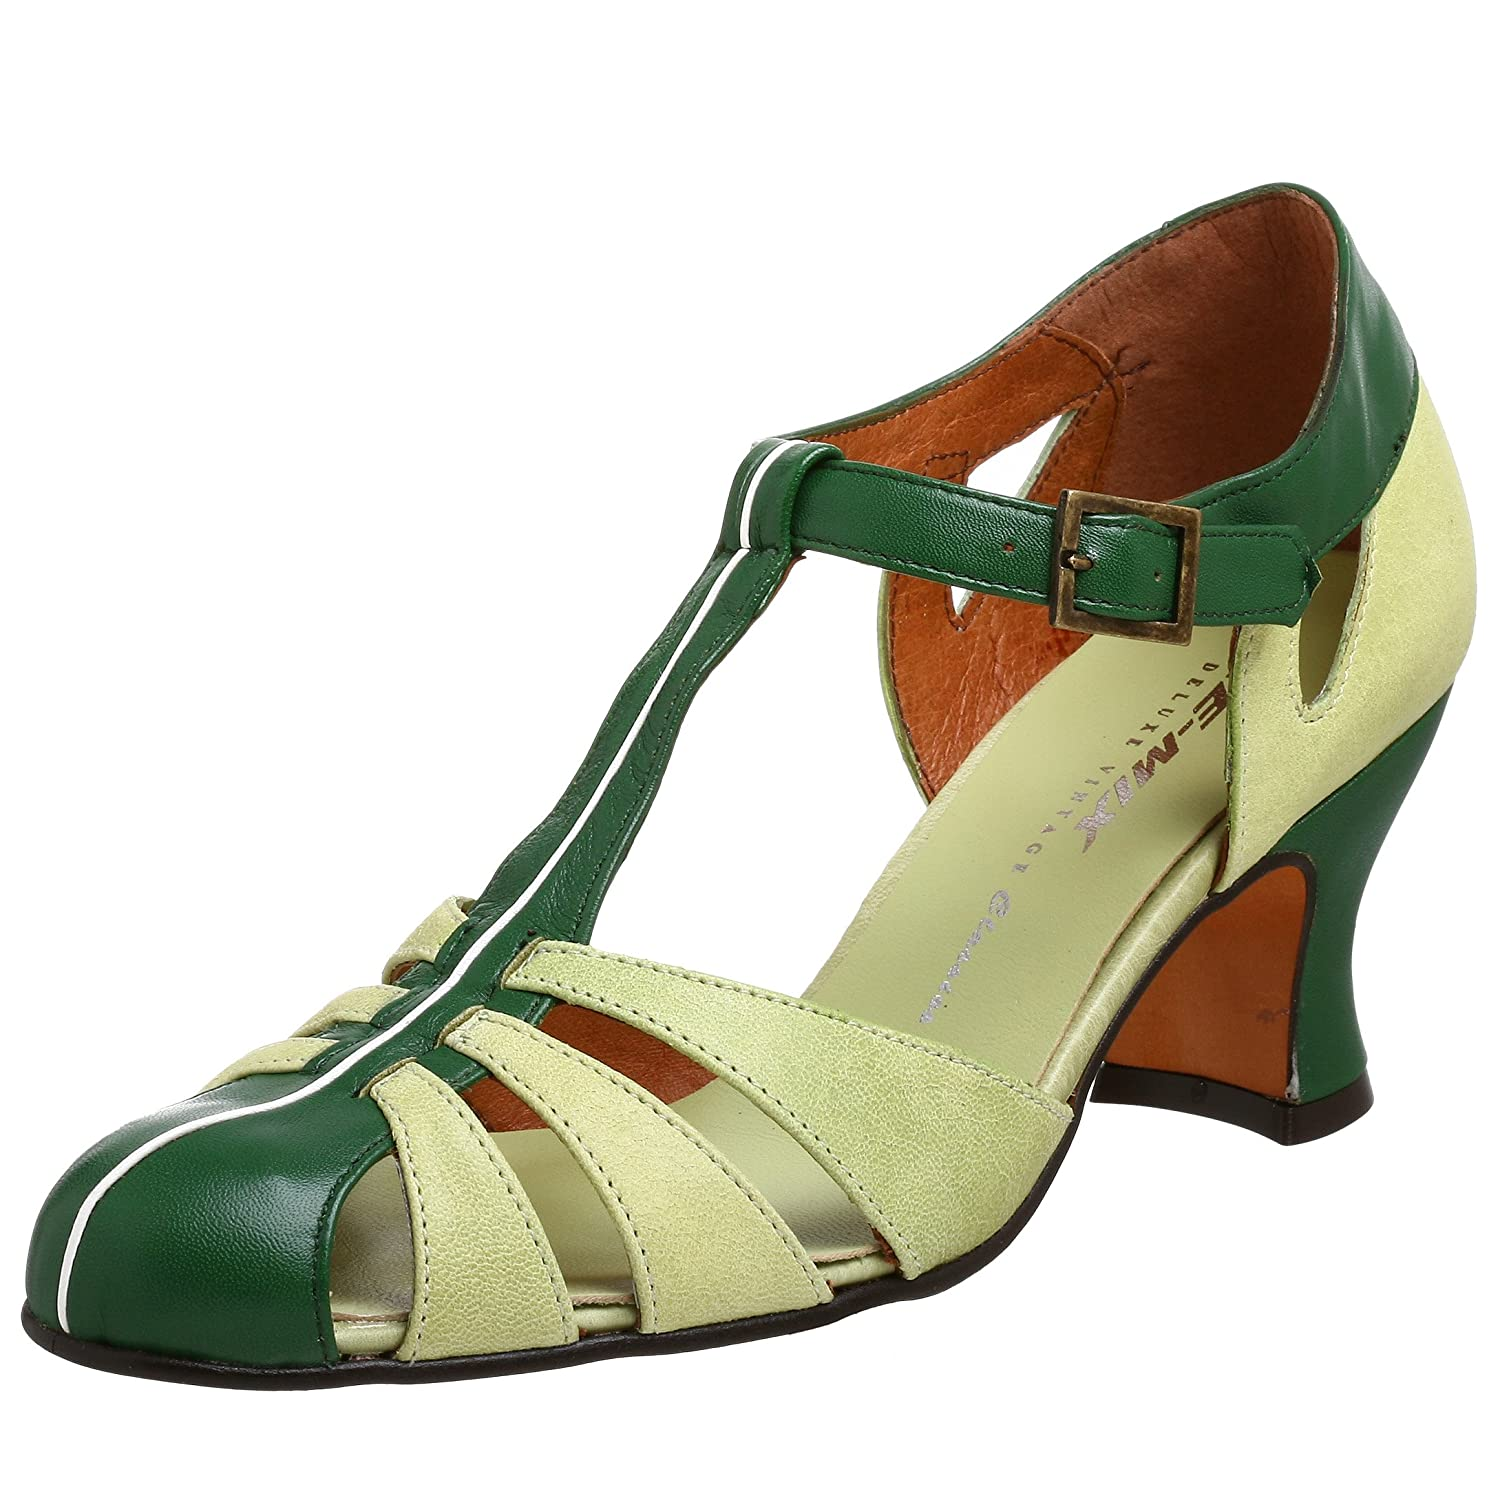 Re-Mix Vintage Balboa Sandal - Free Overnight Shipping & Return Shipping: Endless.com from endless.com